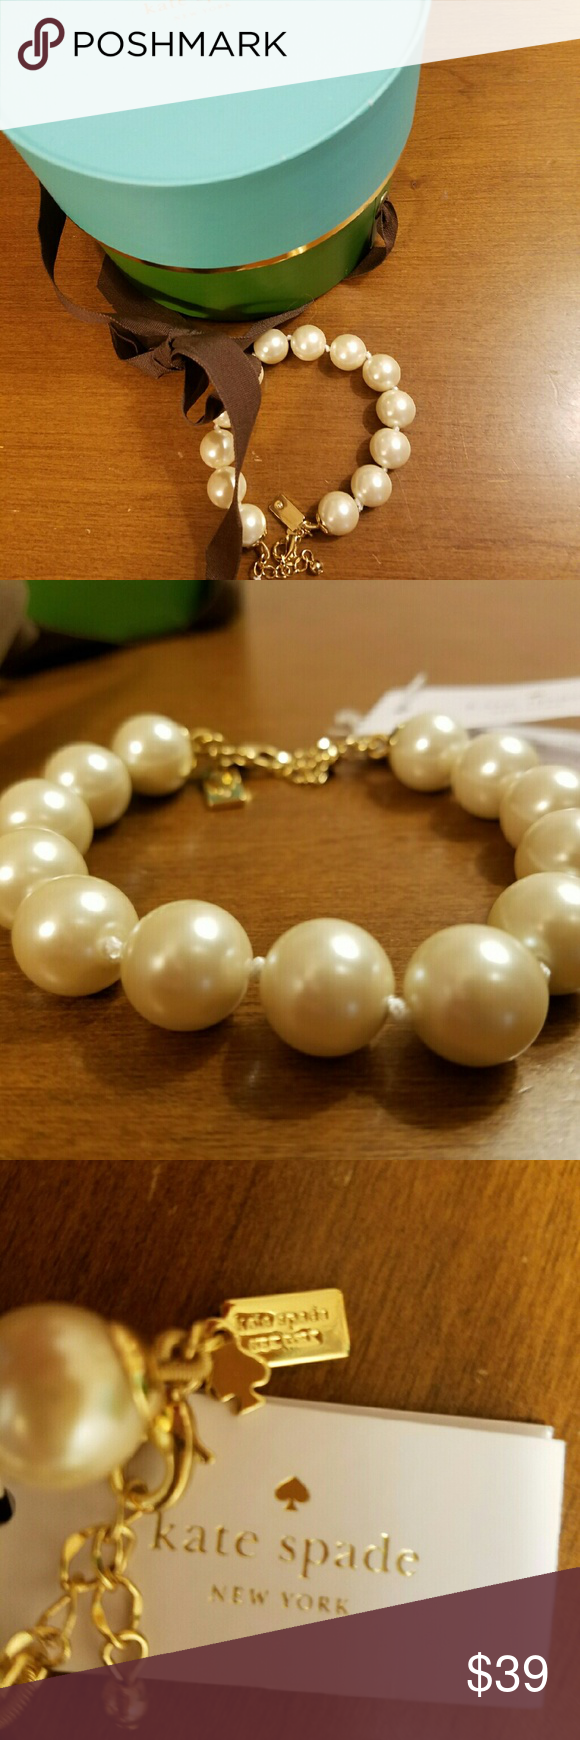 Kate Spade Authentic Pearl Bracelet Her Day to Shine kate spade Jewelry Bracelets